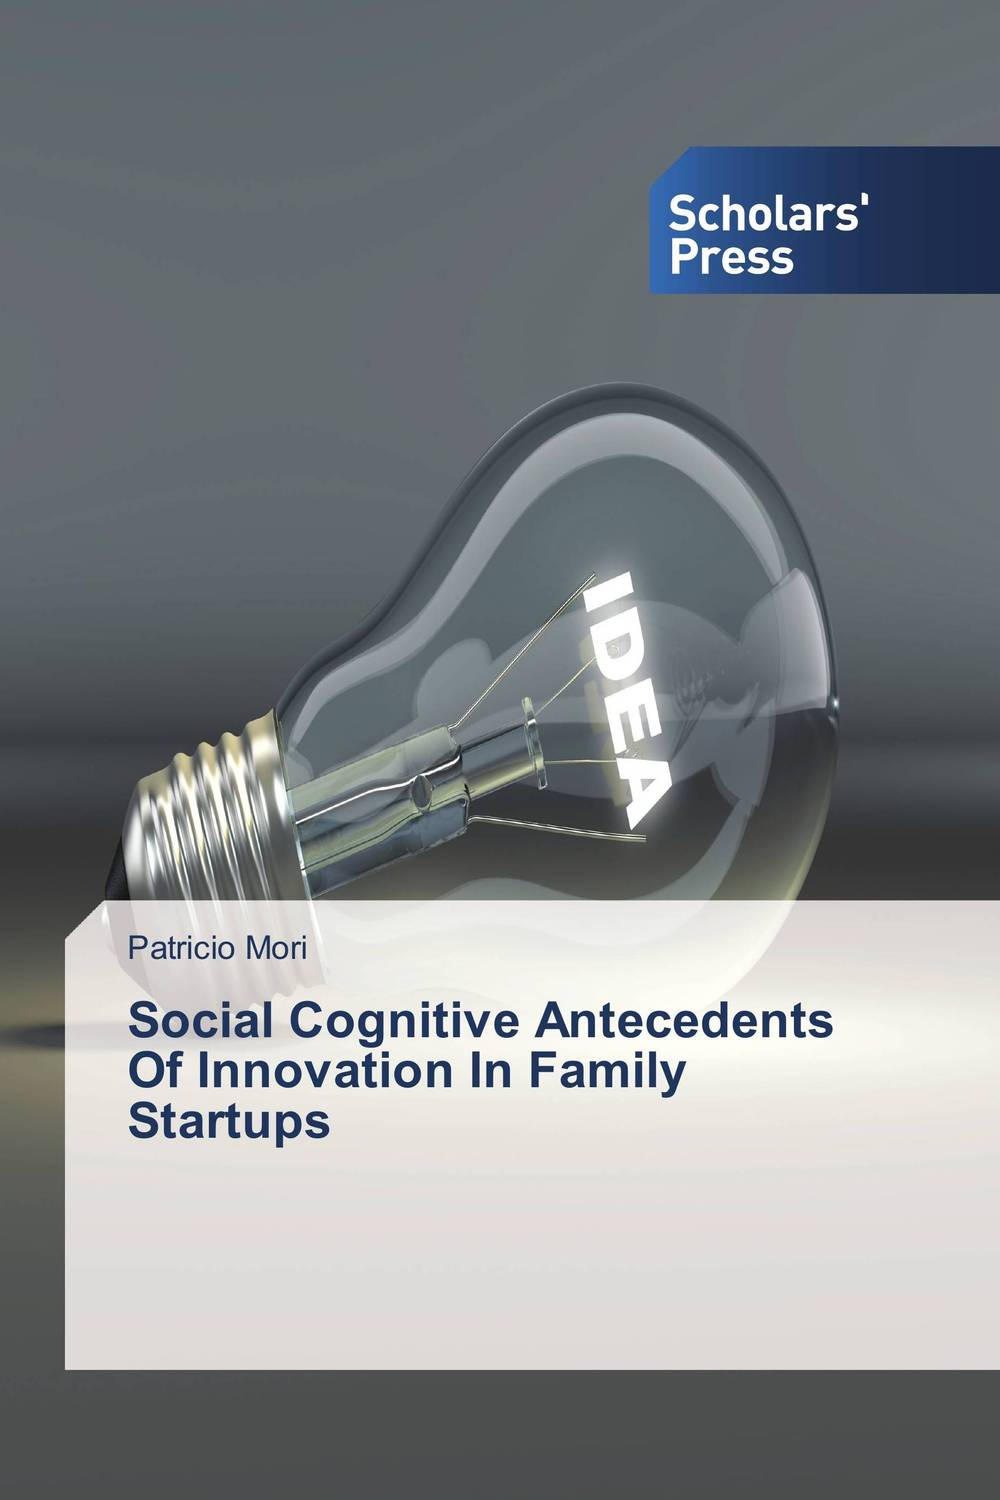 Social Cognitive Antecedents Of Innovation In Family Startups i manev social capital and strategy effectiveness an empirical study of entrepreneurial ventures in a transition economy